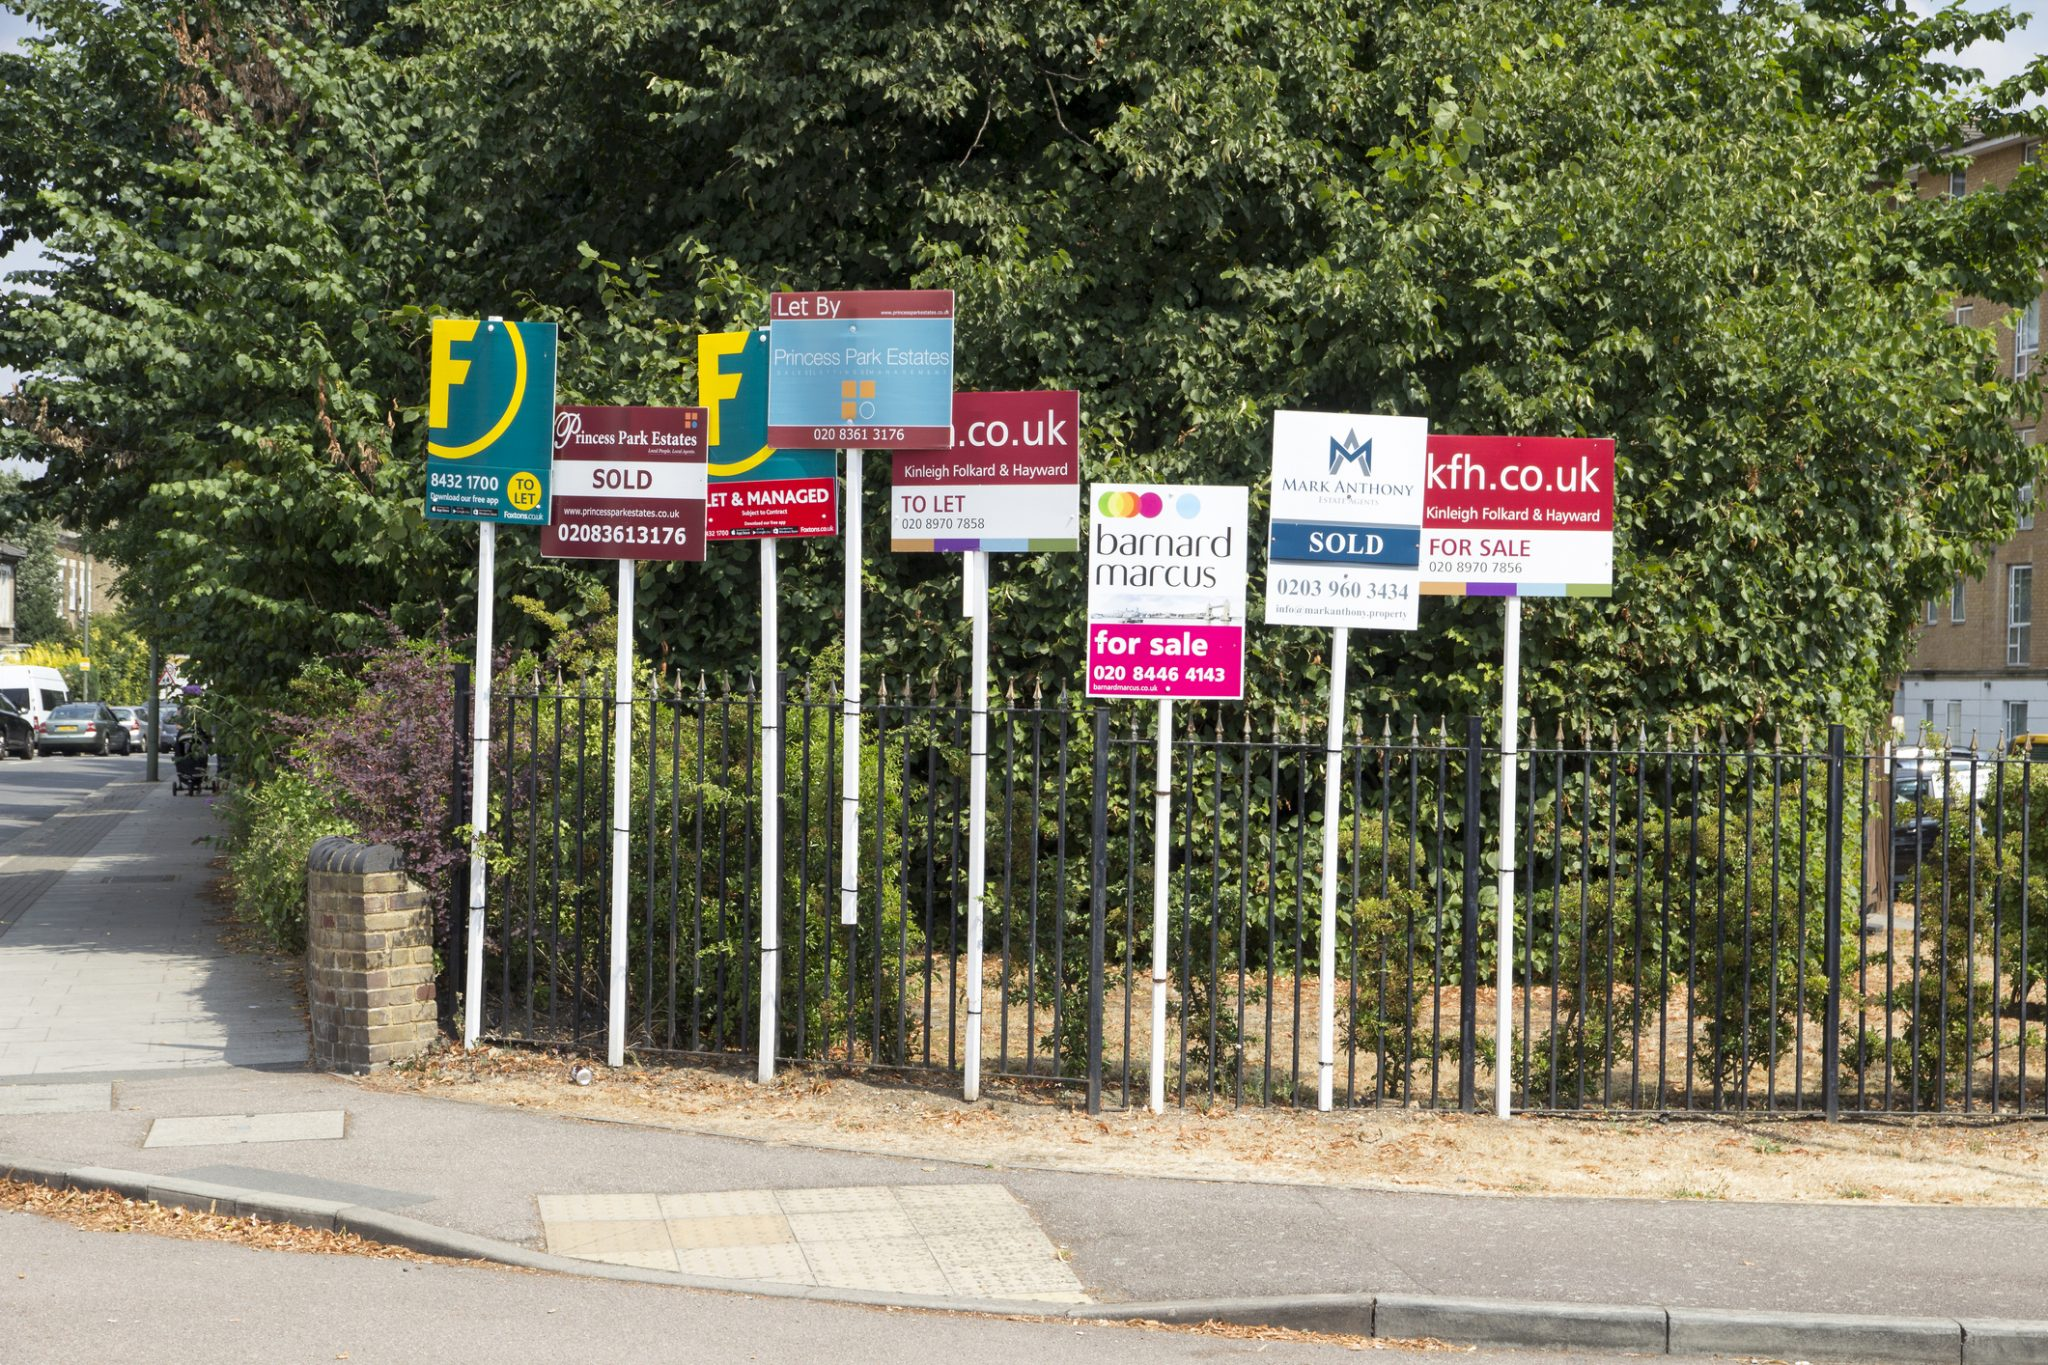 North-west led annual house price growth in England during 2020